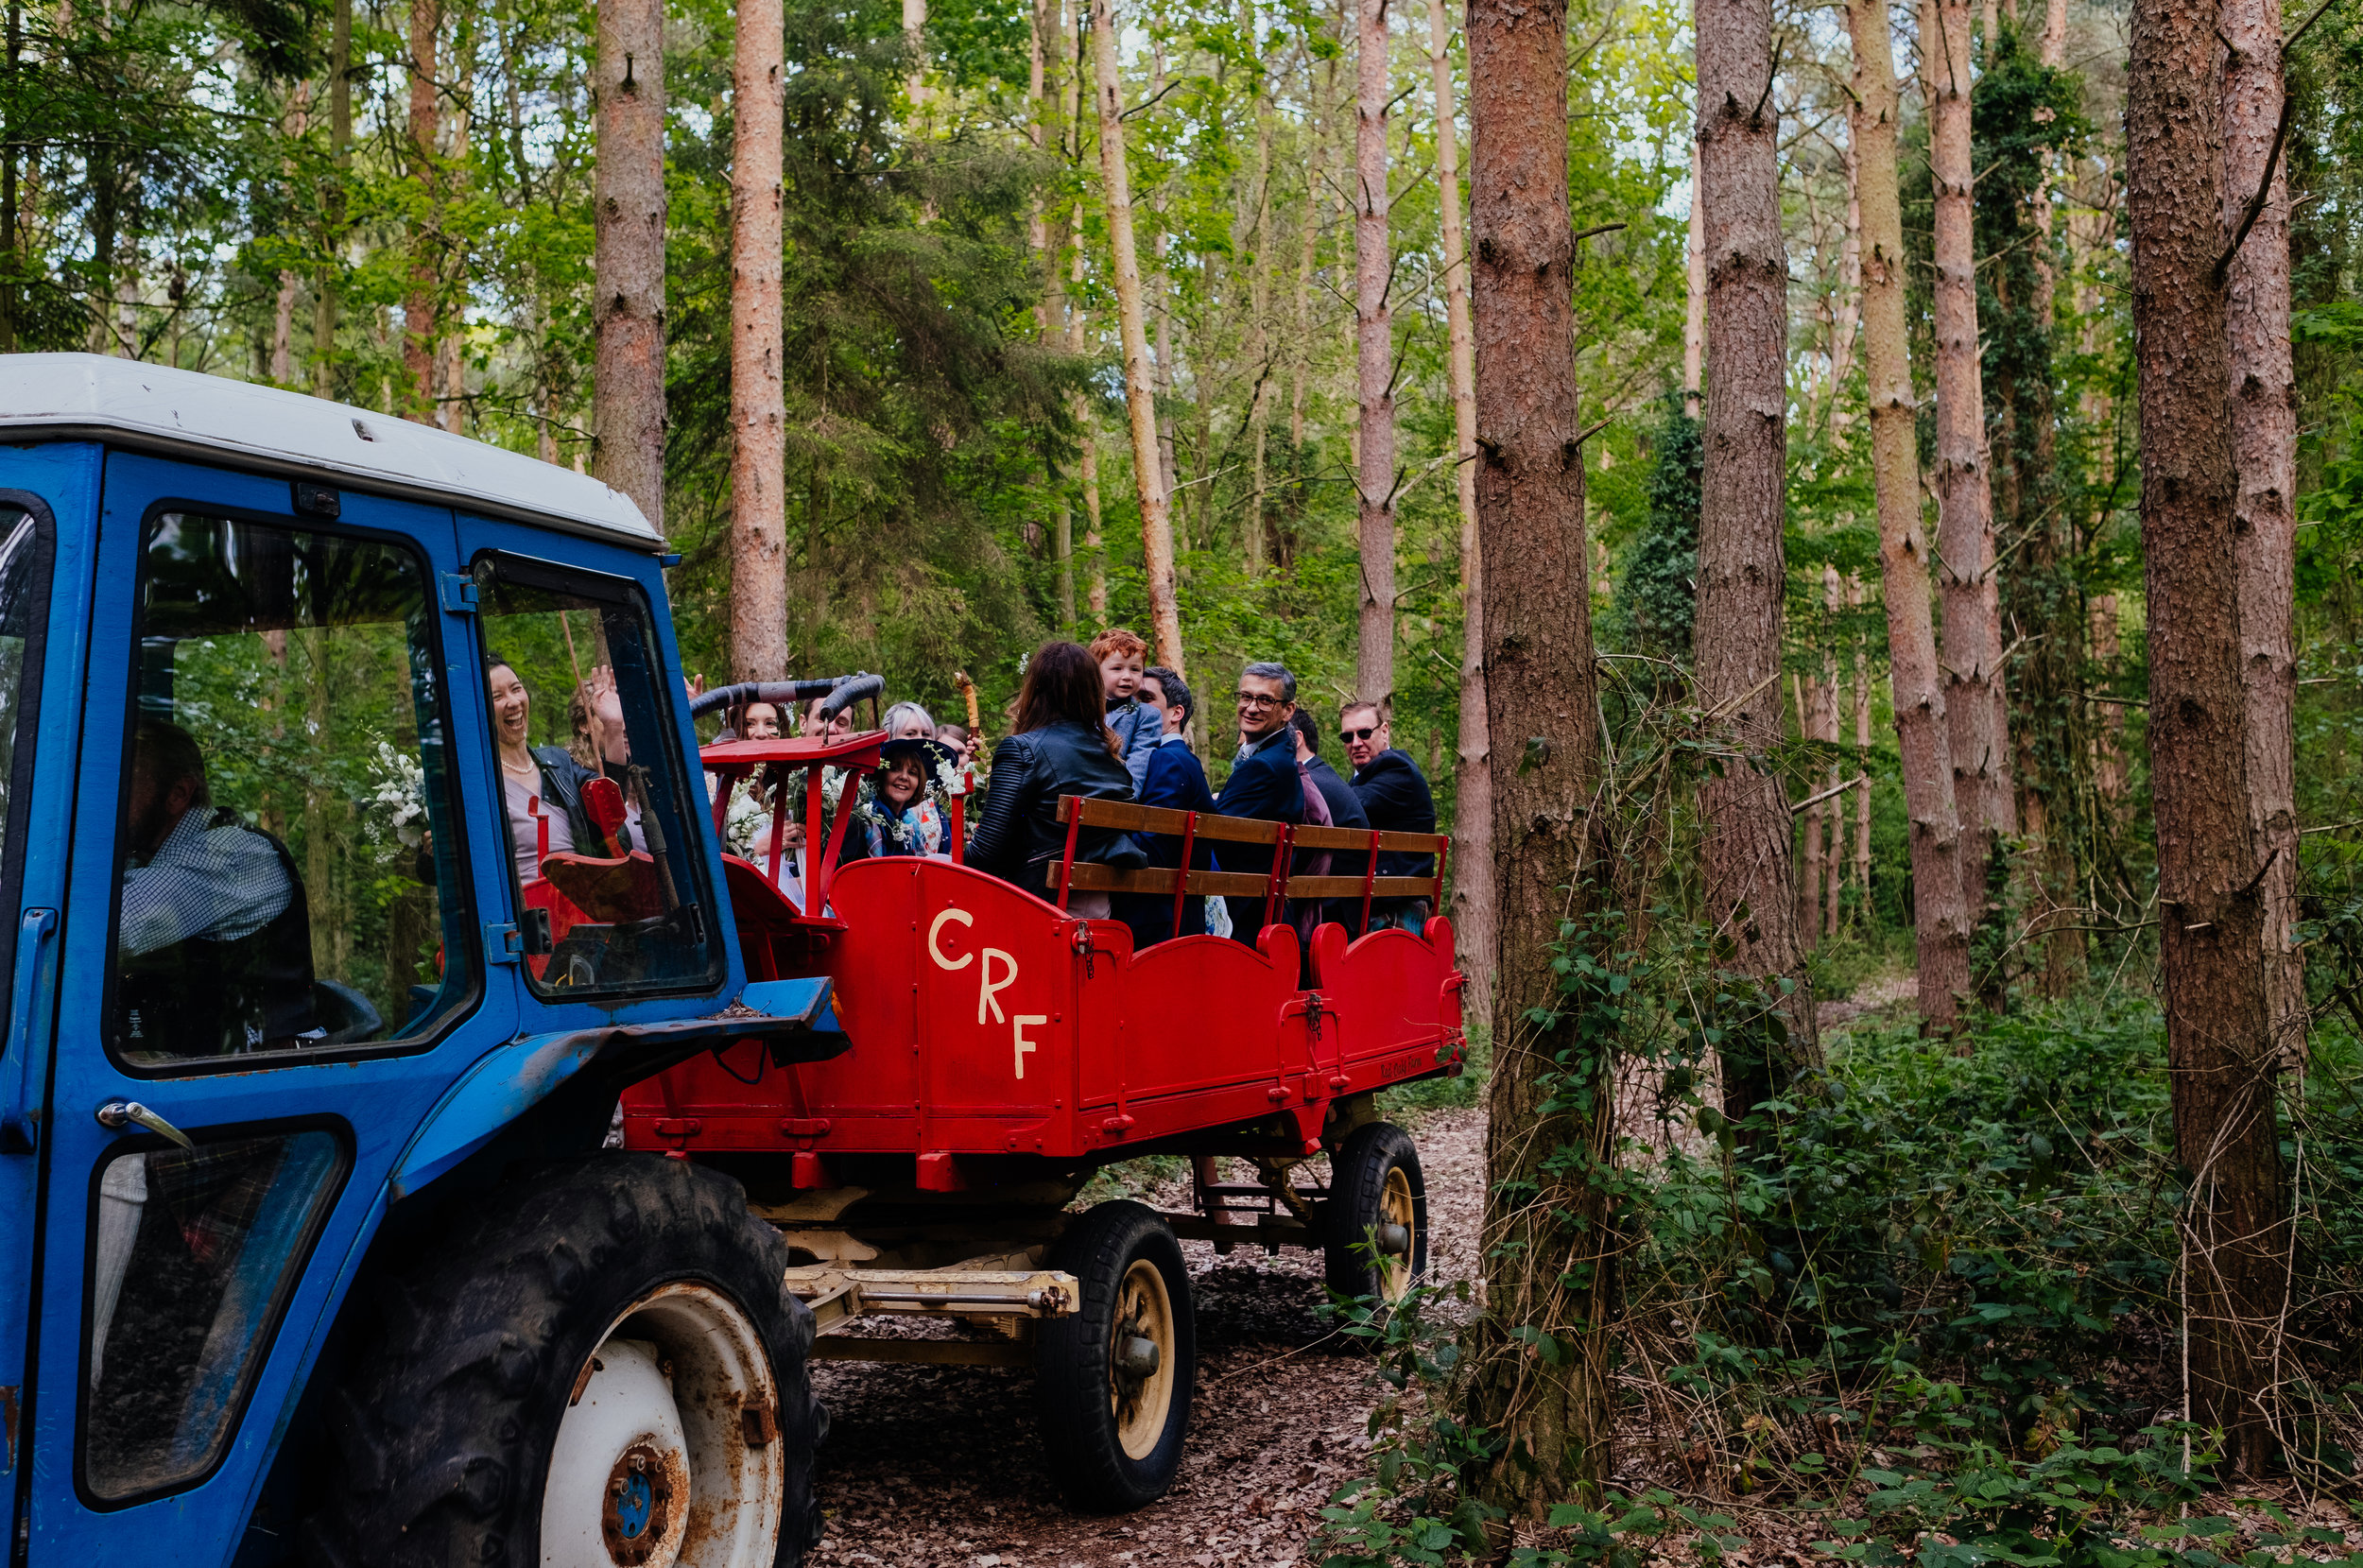 Captains Wood Barn wedding tractor and cart carrying wedding party